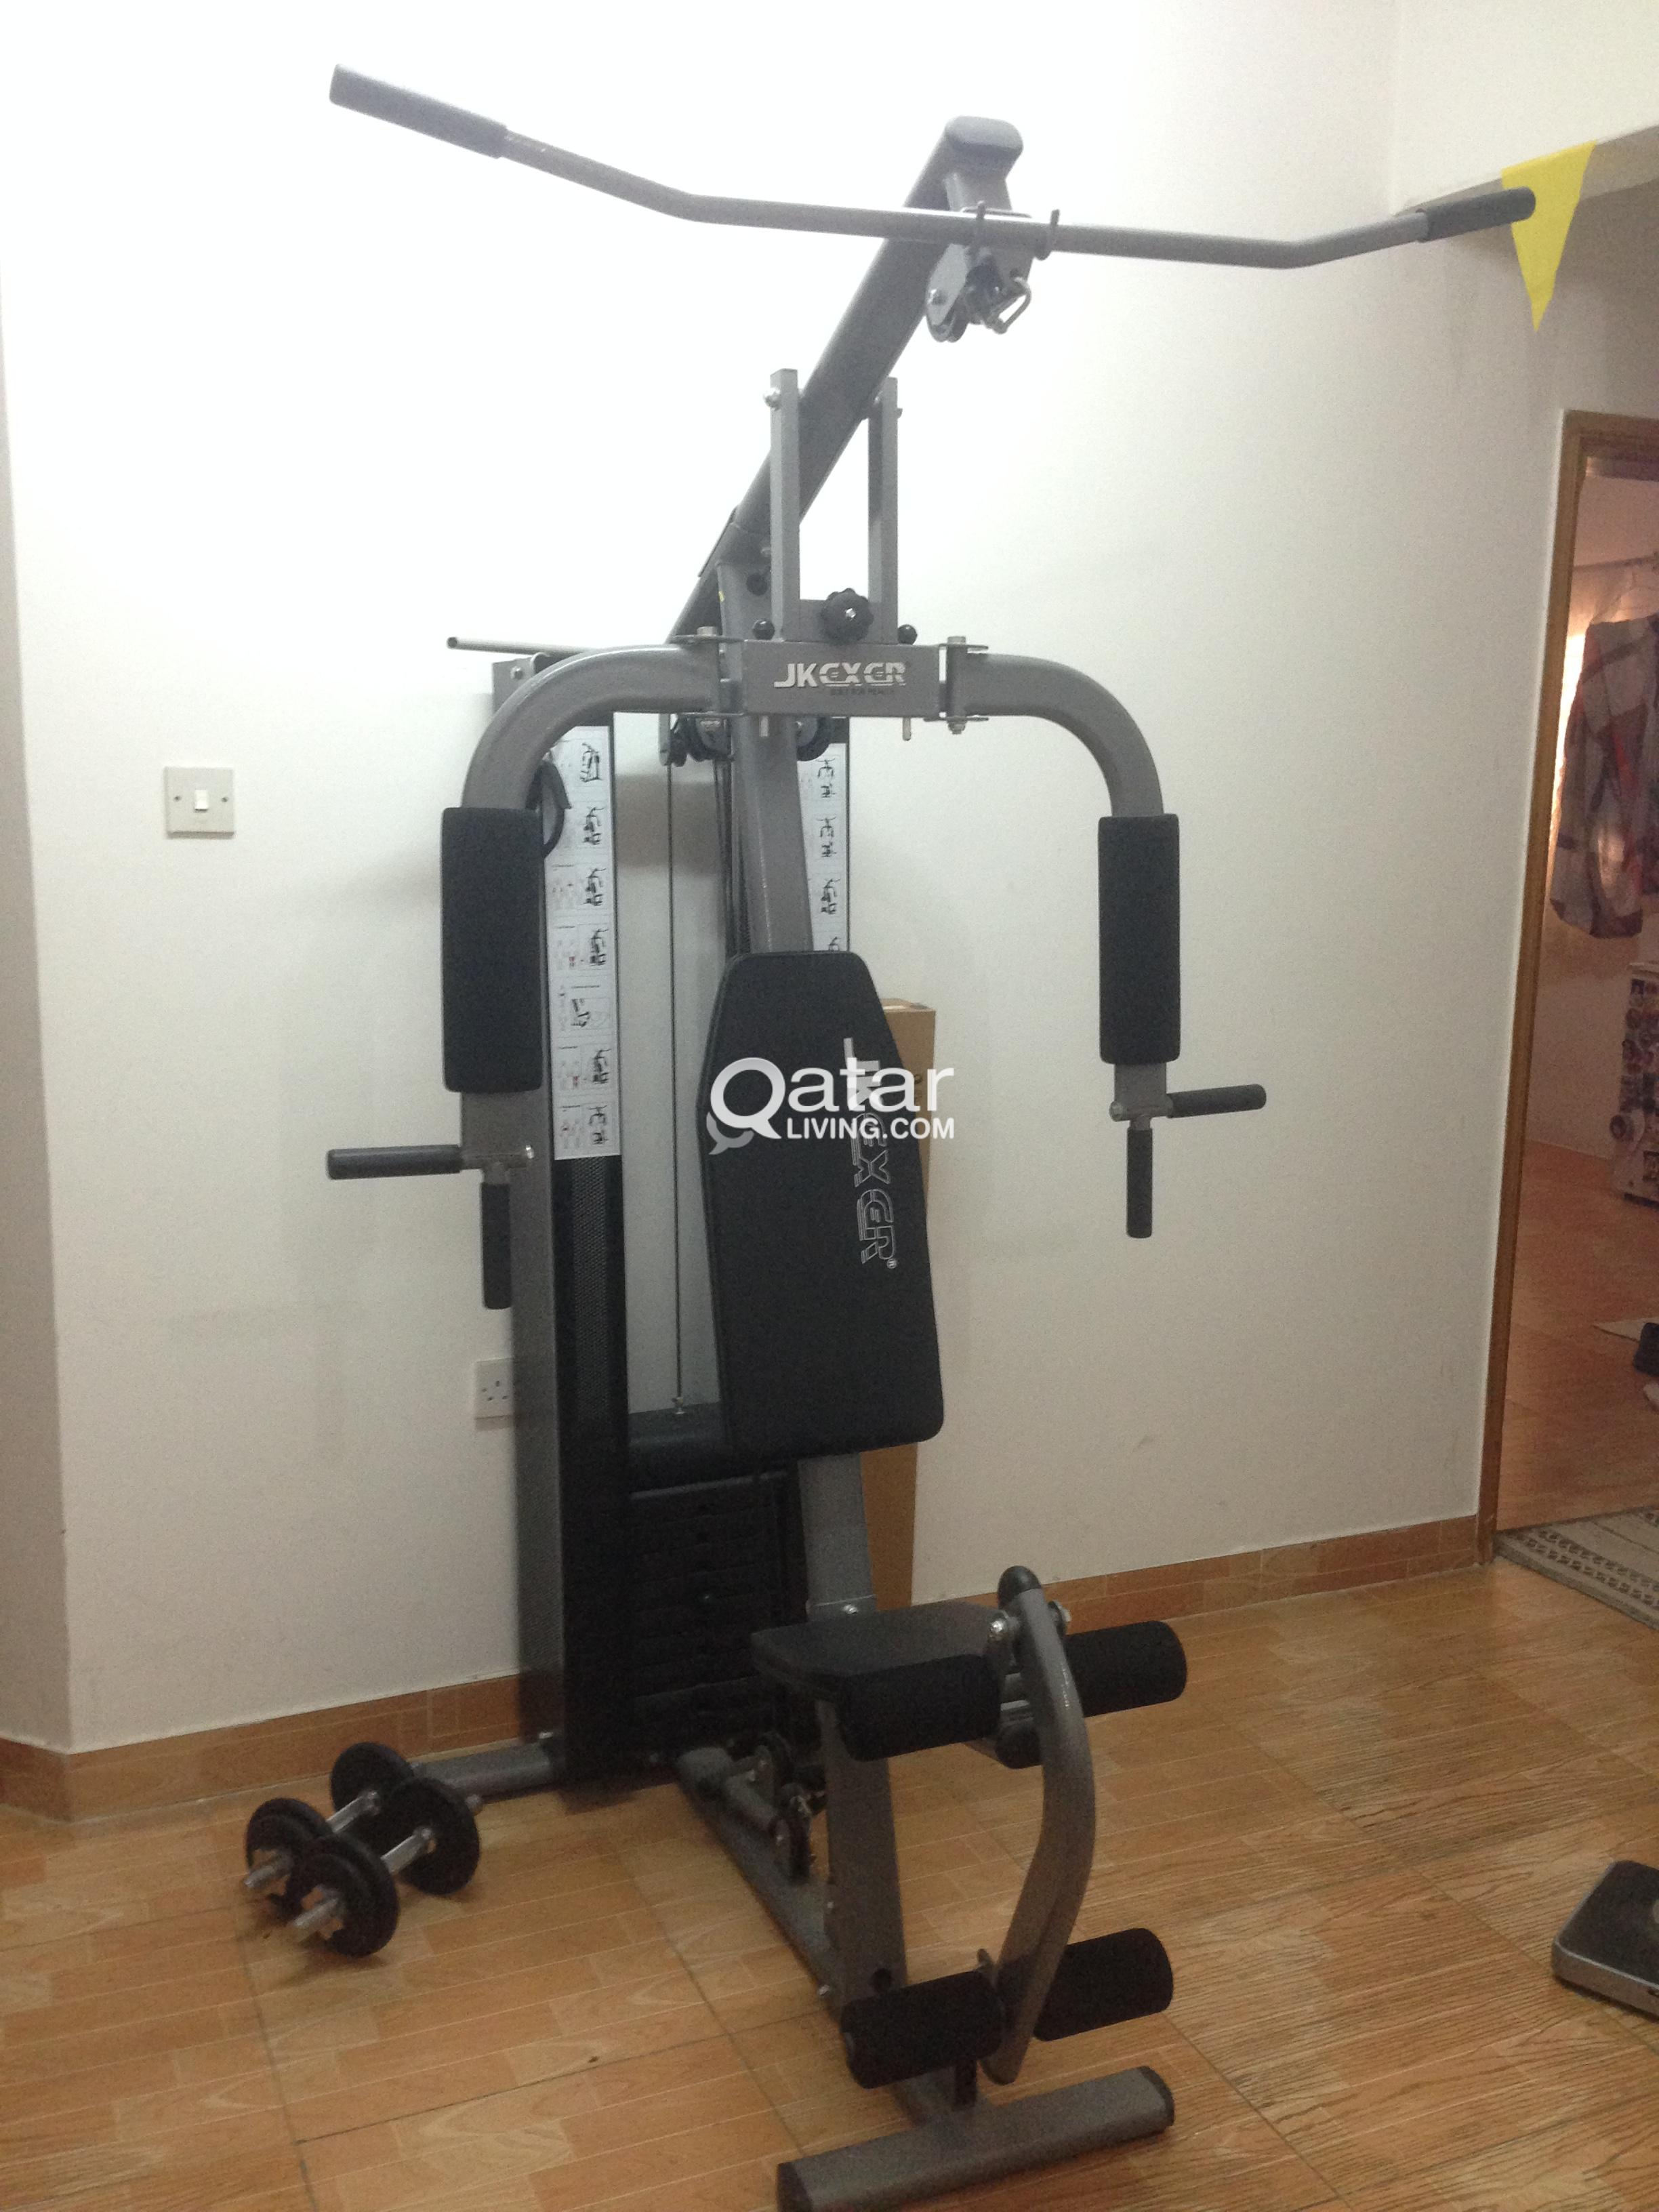 Home gym exercise machine for sale qatar living